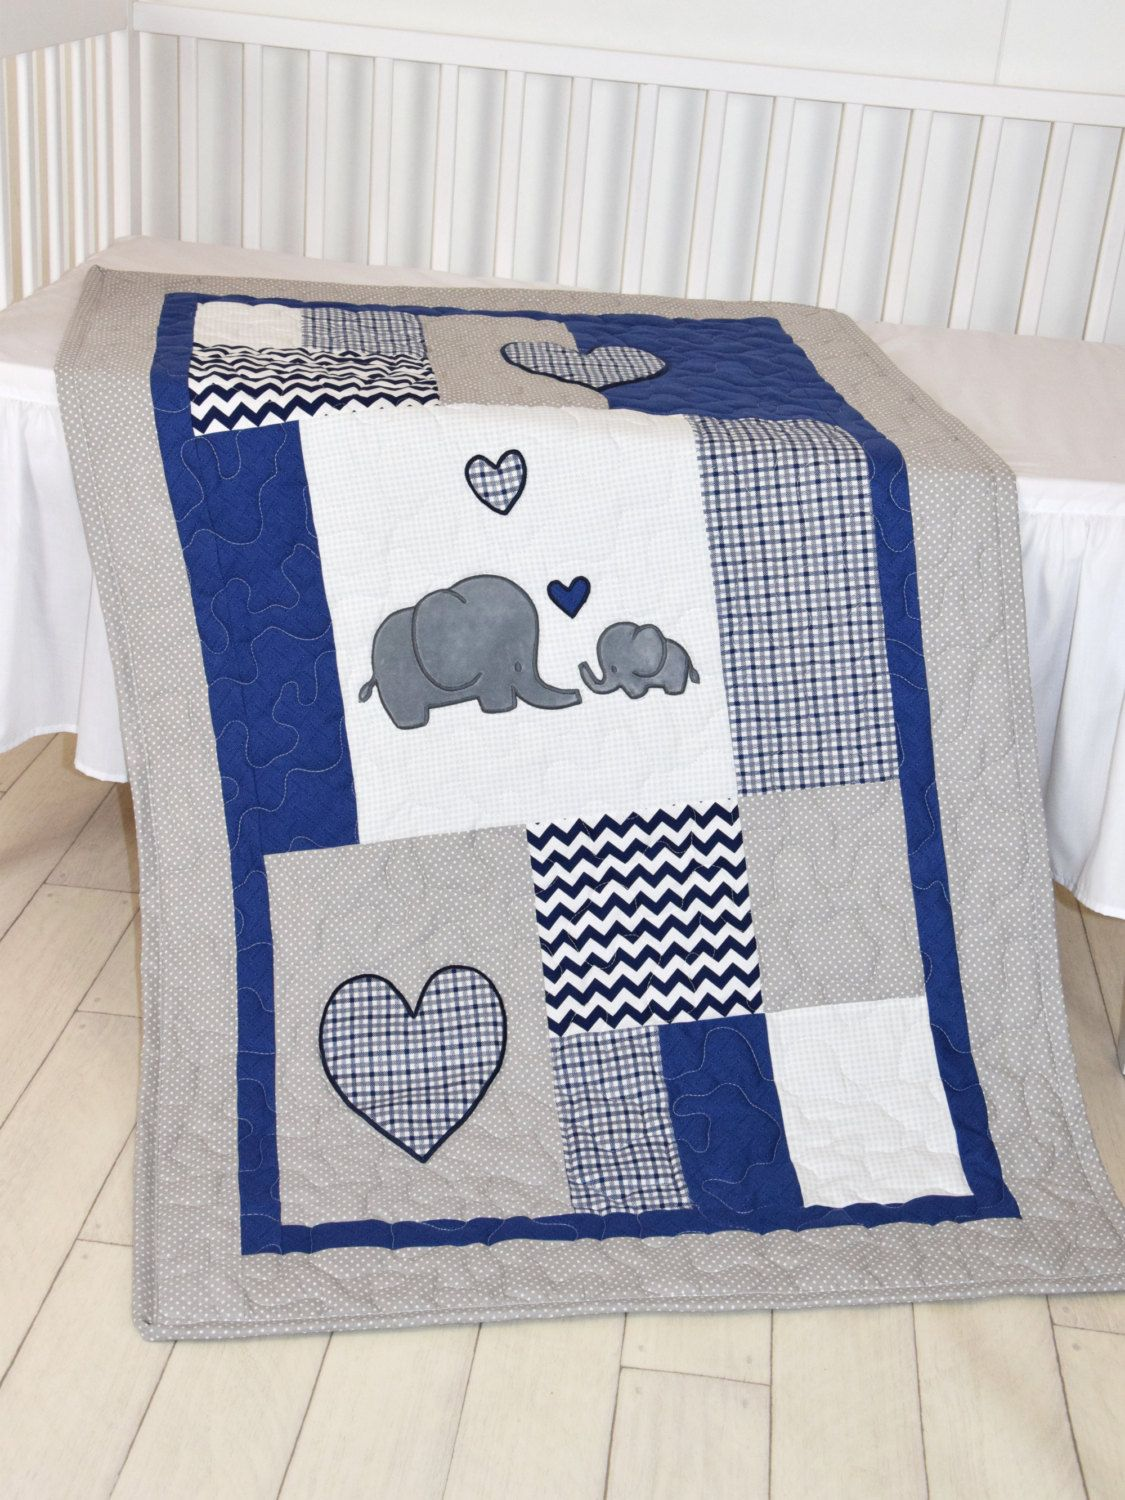 Baby Bed Deken.Elephant Baby Blanket Navy Gray Crib Quilt Chevron Kids Bedding